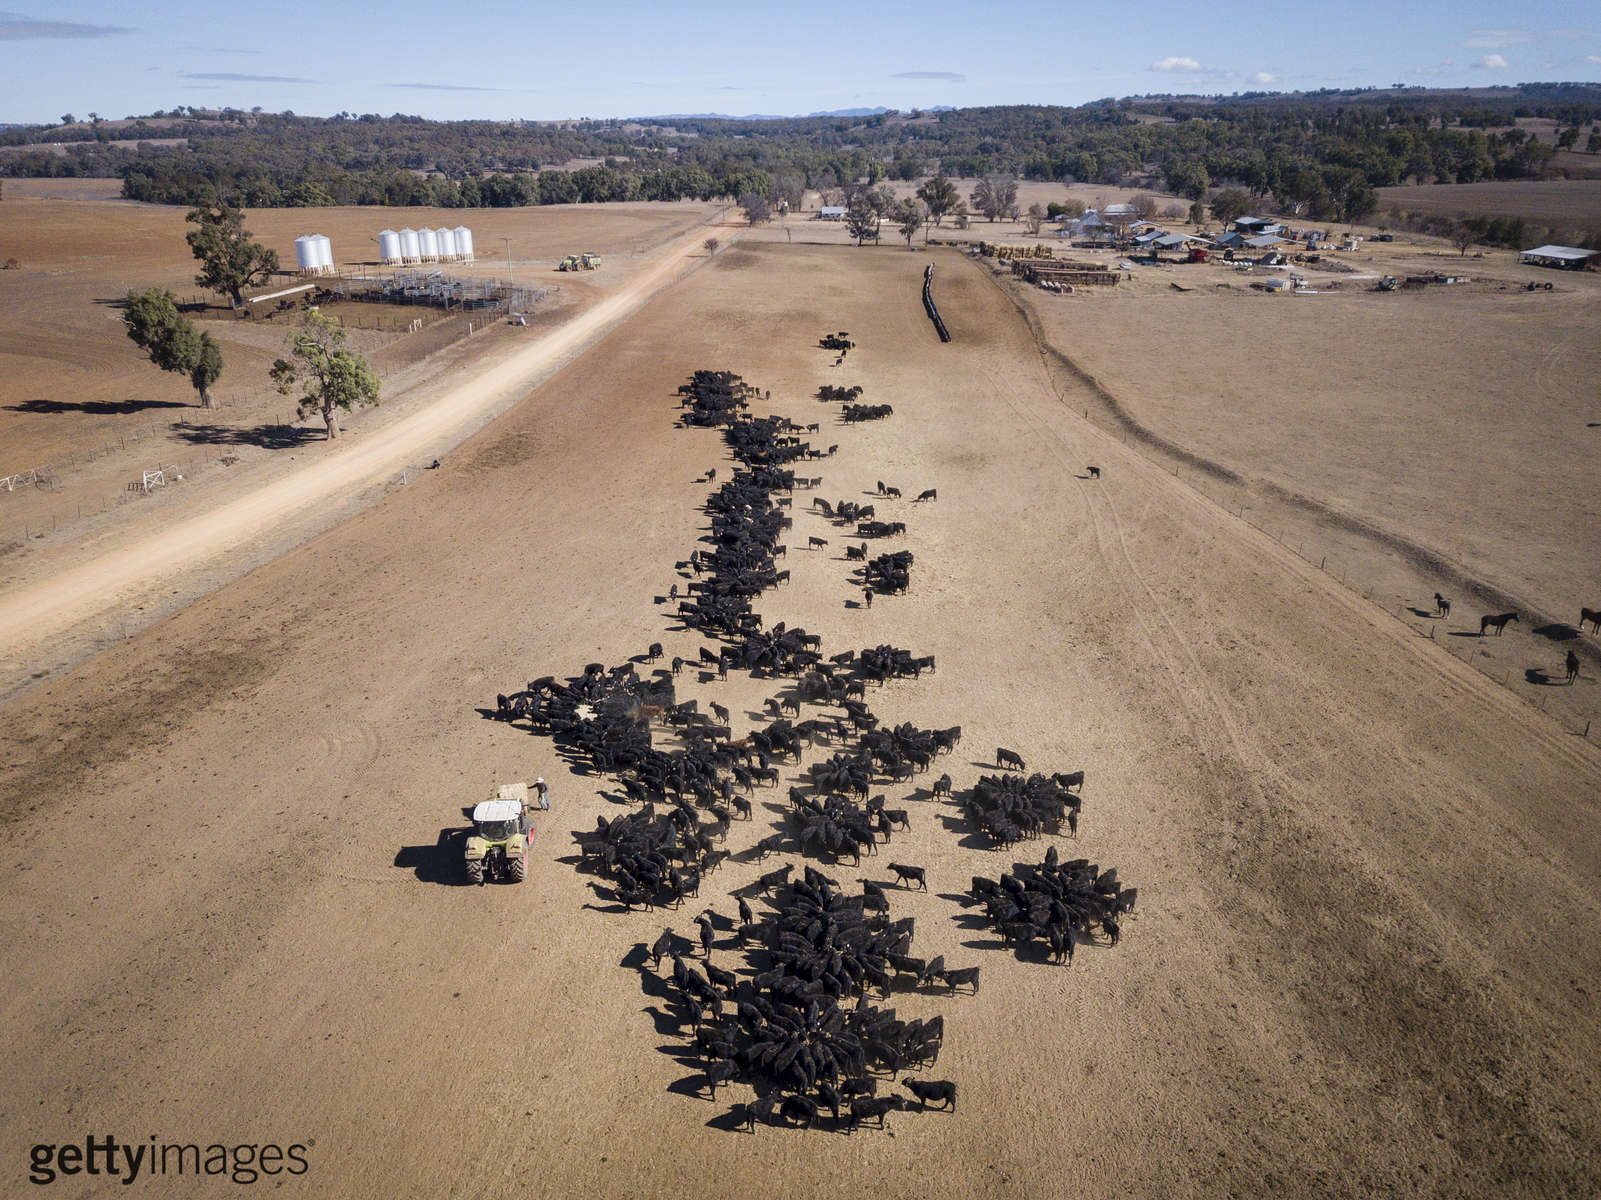 COONABARABRAN , NEW SOUTH WALES - JUNE 19:  An aerial view of the cattle feeding operation on the property 'Toorawandi' owned by Coonabrabran farmer Ambrose Doolan and his wife Lisa.  Both the couples children, Brett and Emily have returned home to work on the farm during the drought. The name of the property translates to 'rows of standing stones', which is presently an apt description of the bare dirt and stones that stretch as far as the can see.  The New South Wales State government recently approved an emergency drought relief package of A$600m, of which at least A$250m is allocated for low interest loans to assist eligible farm businesses to recover. The package has been welcomed, though in the words of a local farmer {quote}it barely touches the sides{quote}. Now with the real prospect of a dry El-Nino weather pattern hitting the state in Spring, the longer term outlook for rain here is dire. June 19, 2018 in Coonabarabran, Australia.  (Photo by Brook Mitchell/Getty Images)